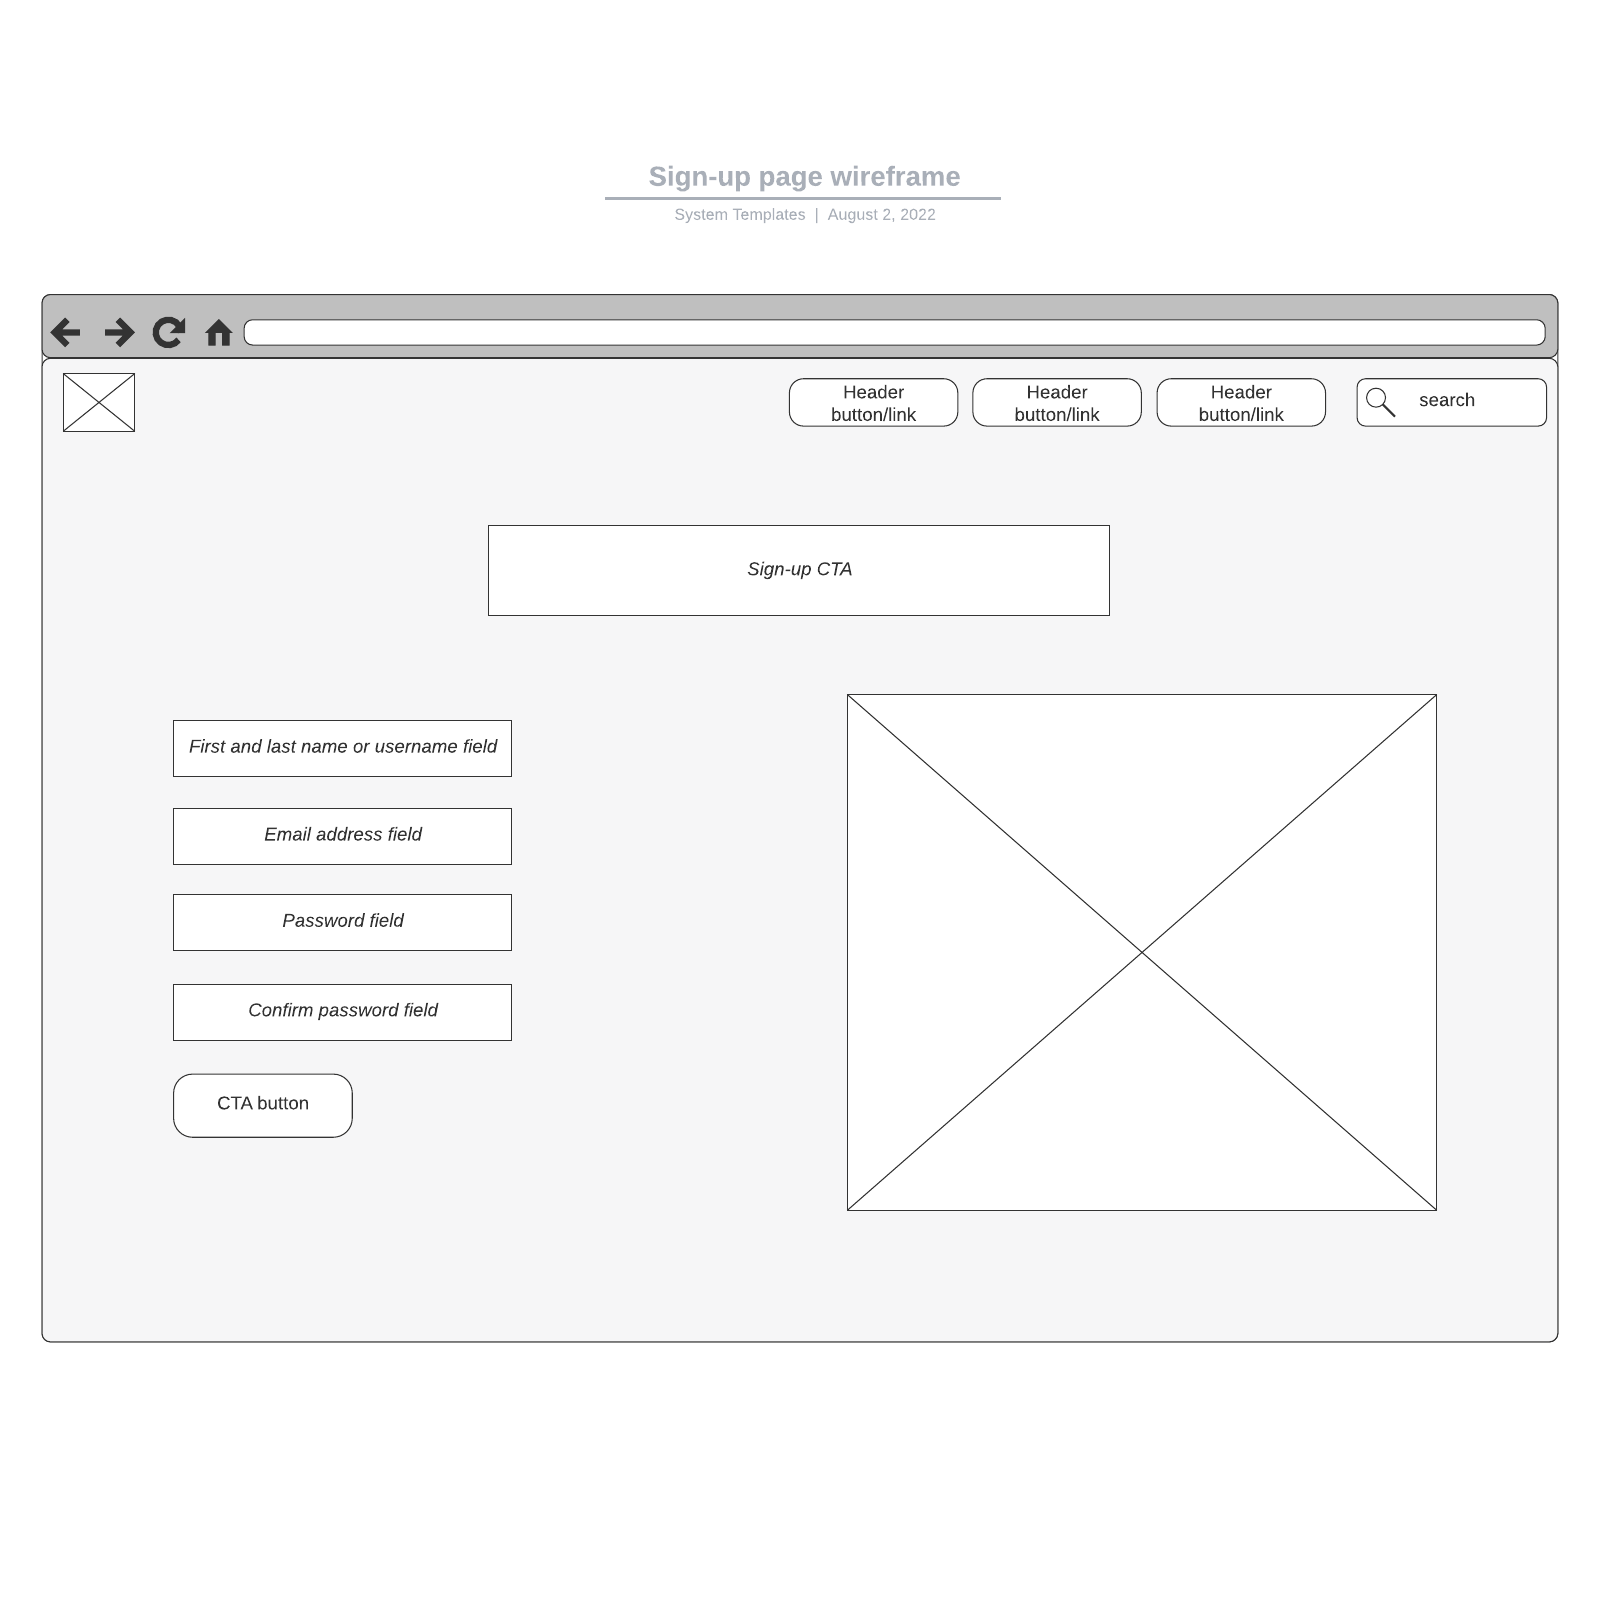 Sign-up page wireframe